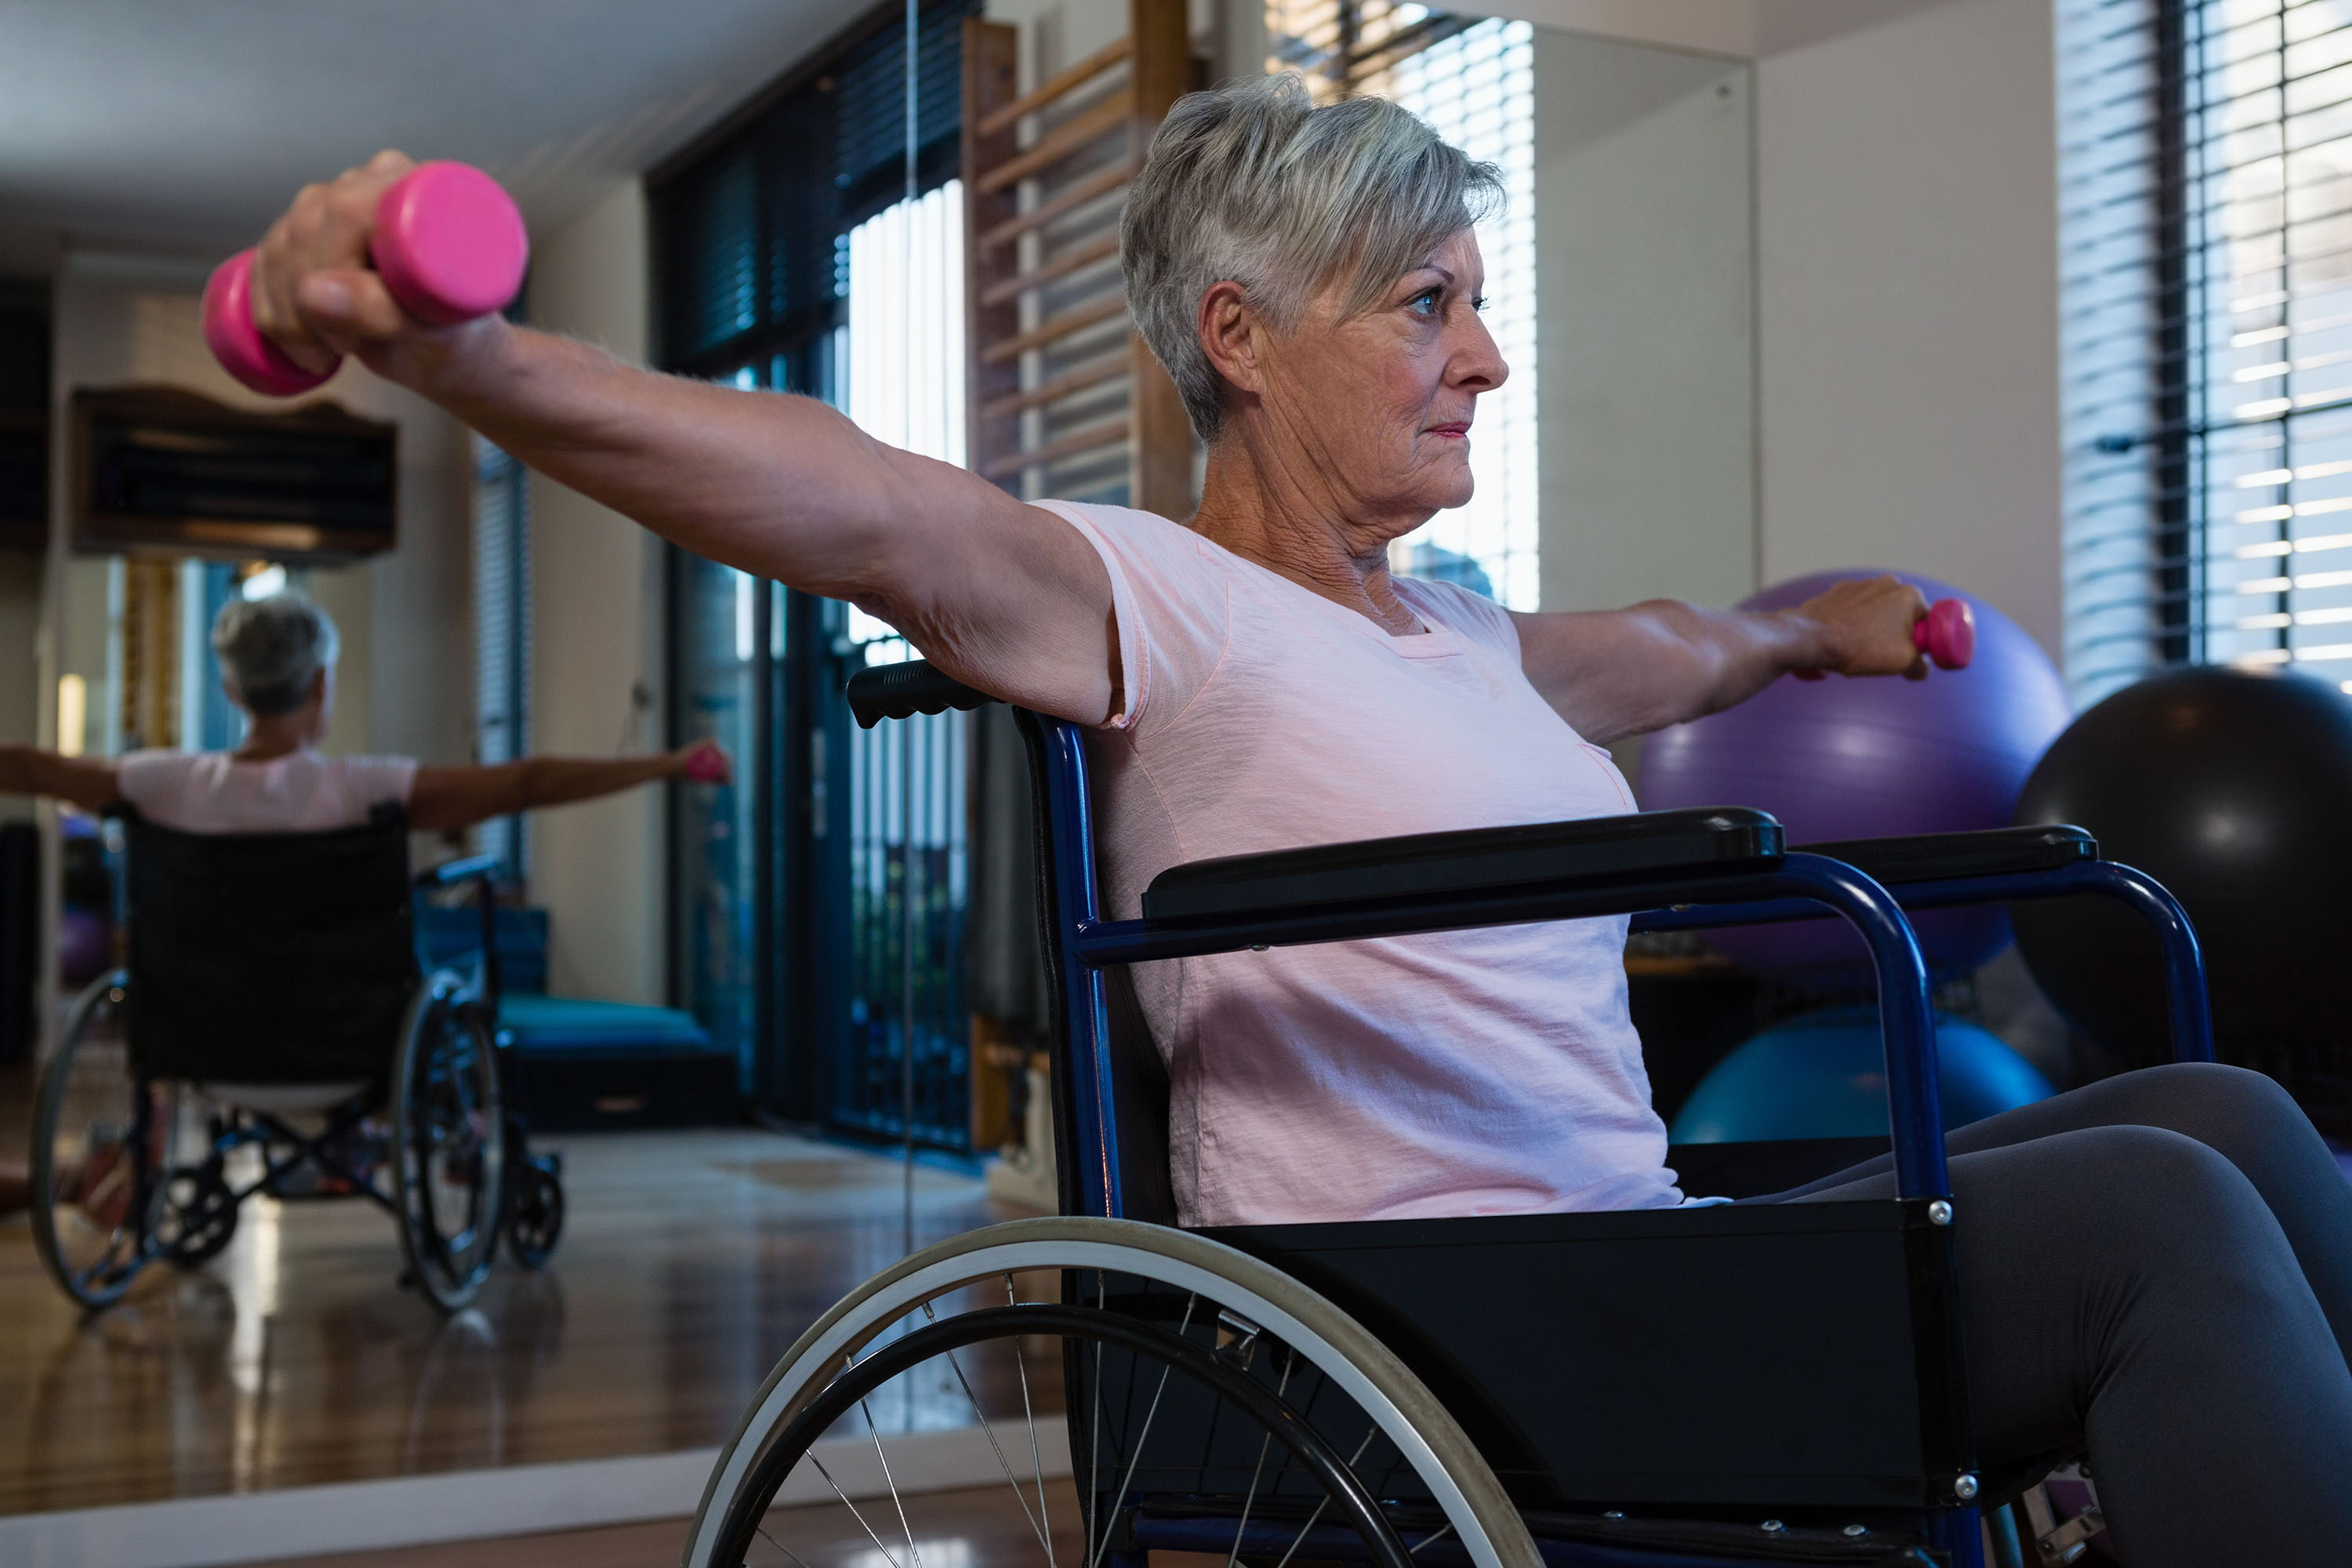 An elderly woman at the gym sits in a wheelchair and lift weights in front of a gym mirror.